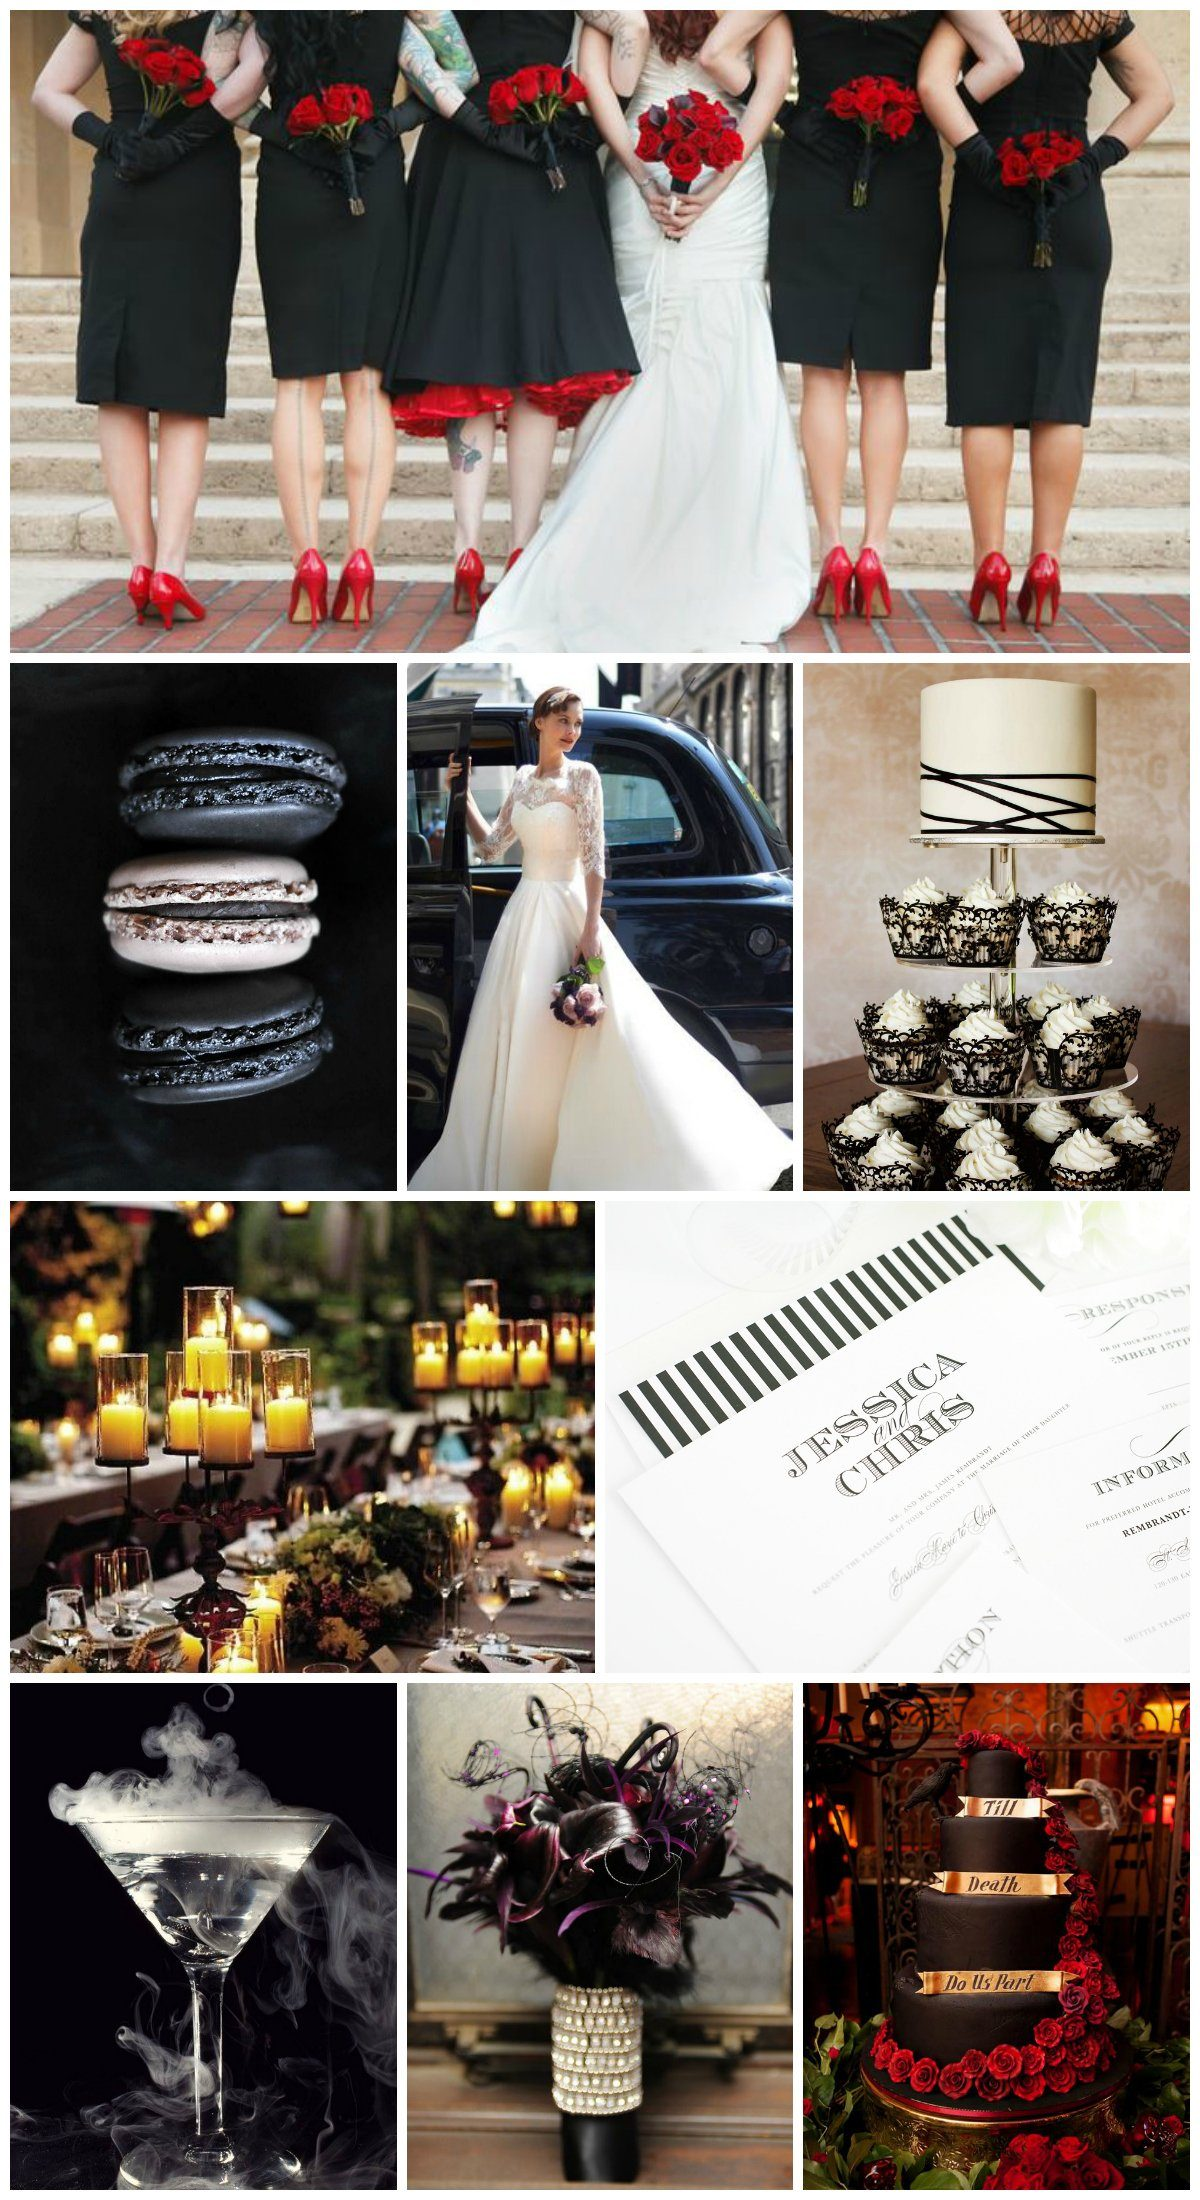 Wedding Inspiration for a Halloween Wedding